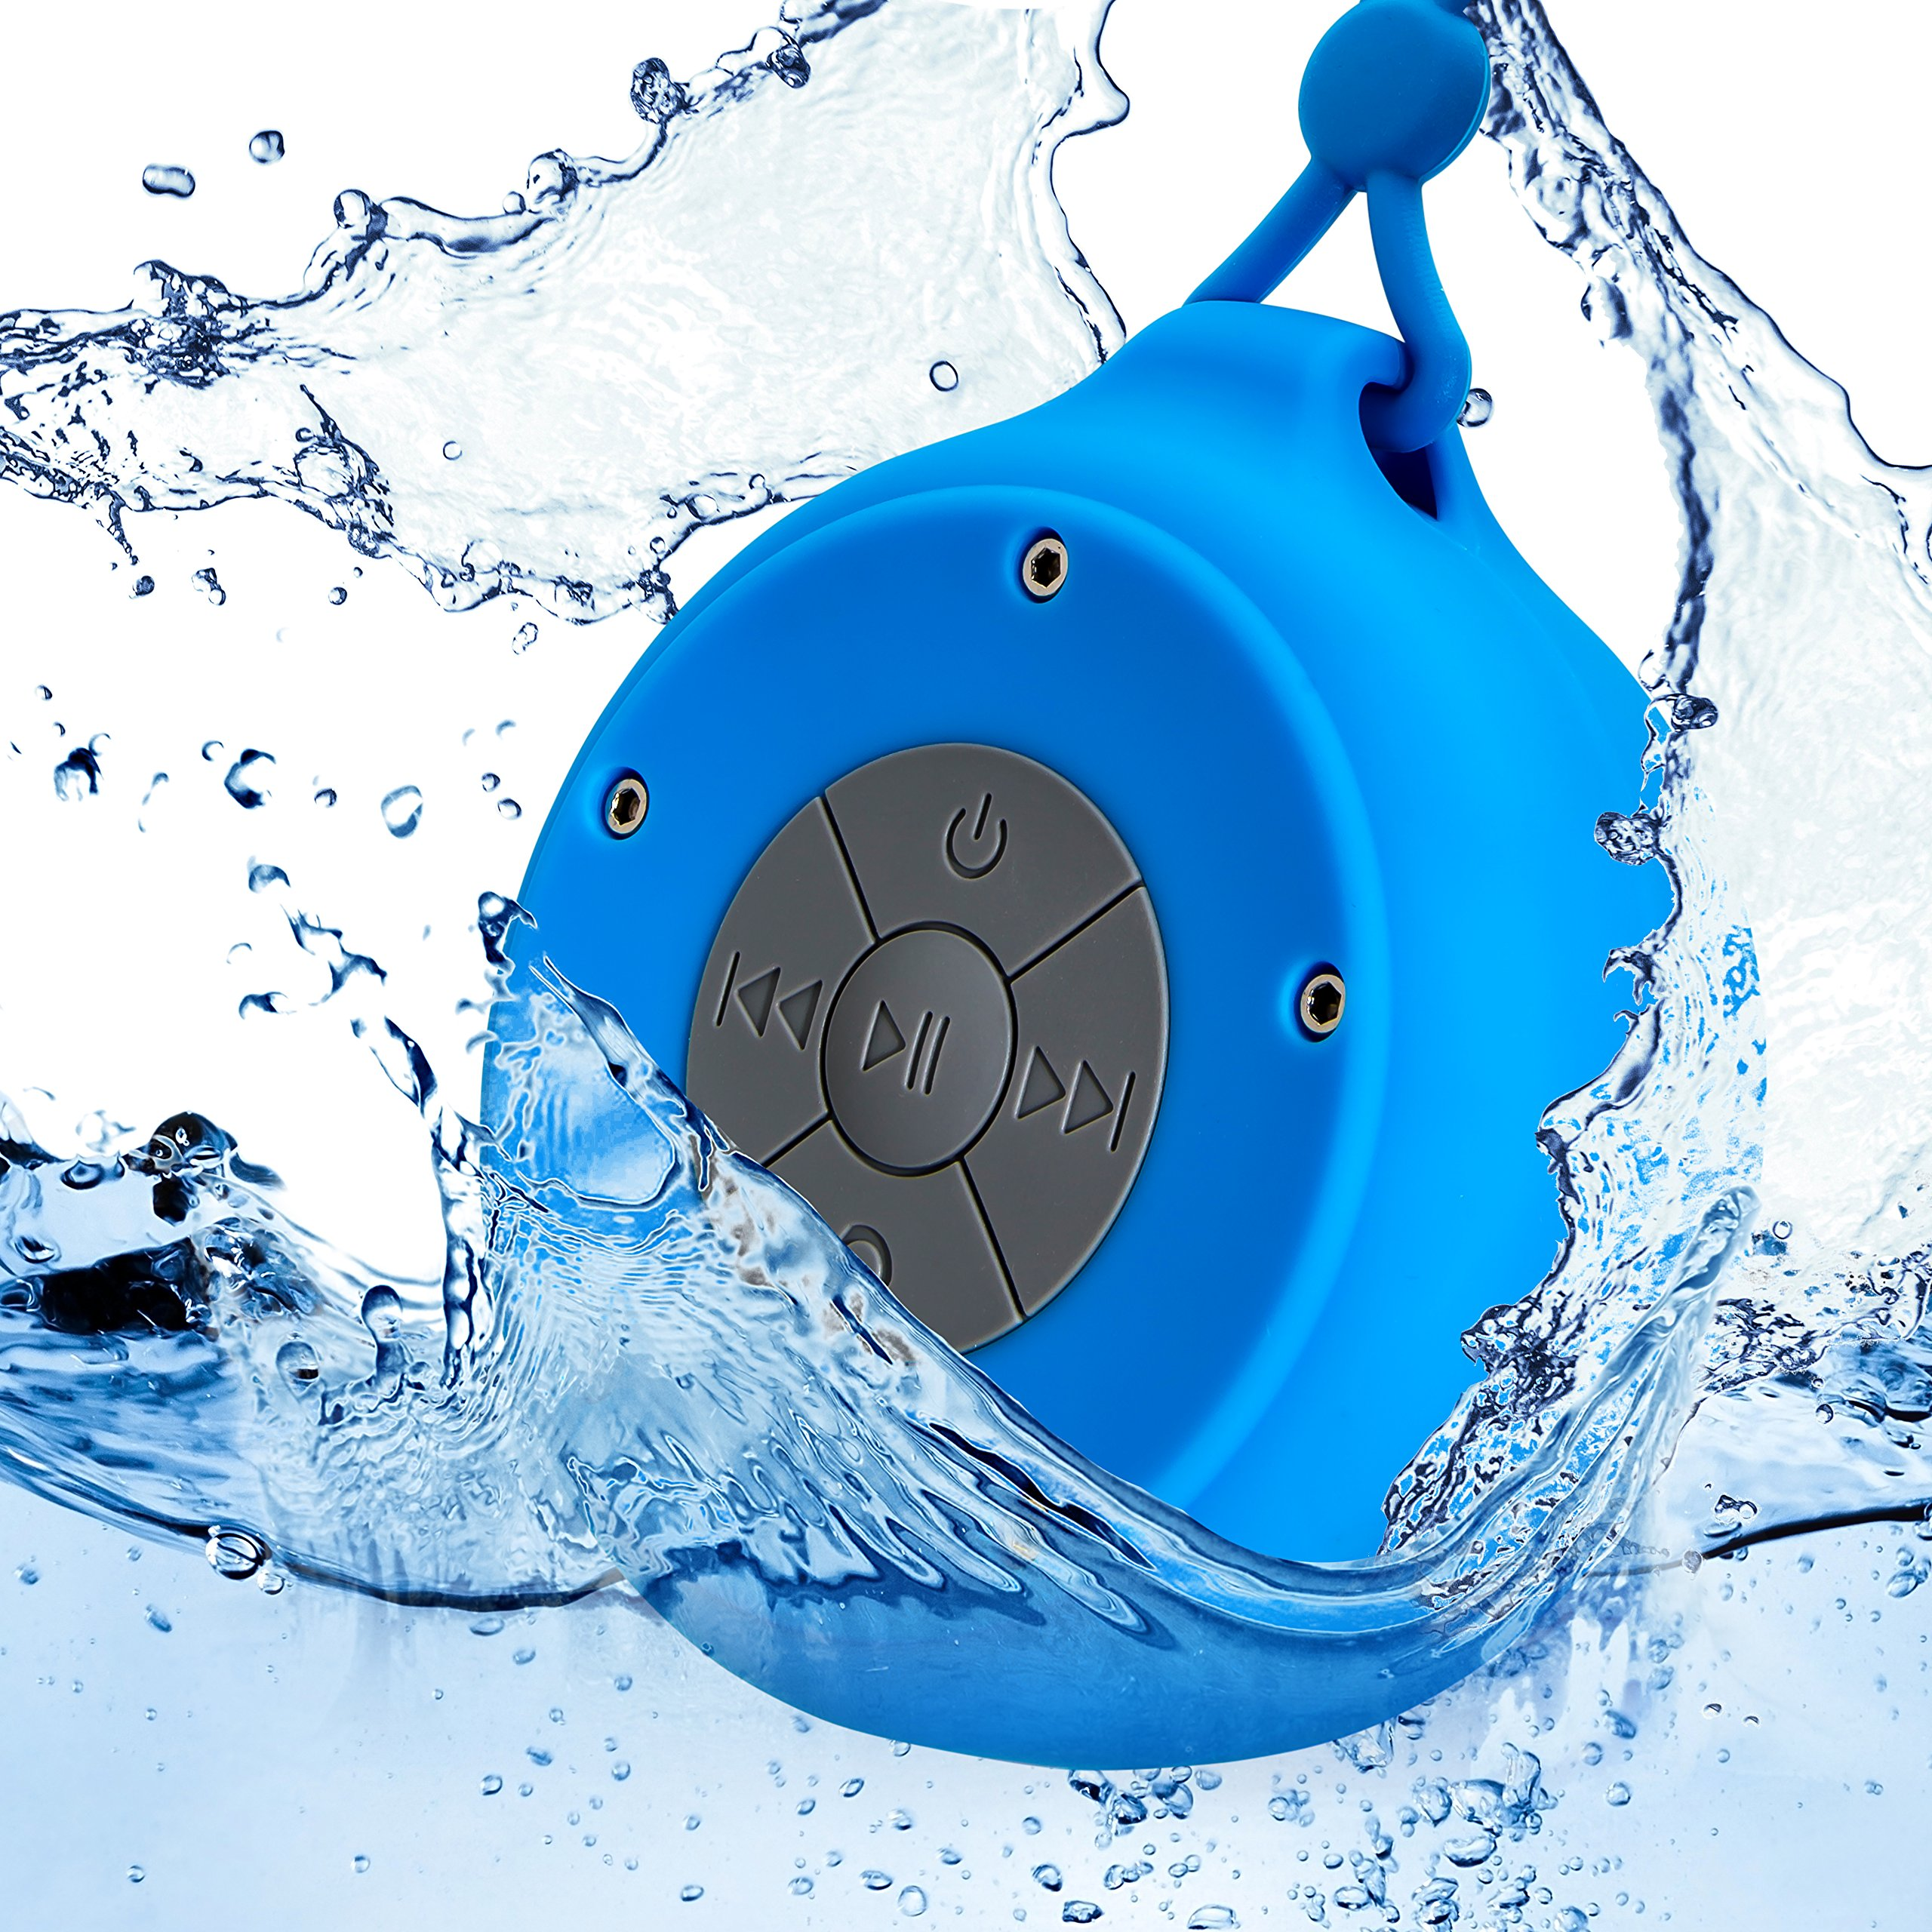 Best Quality Mini Waterproof Hanging Shower Speaker, Durable, Rugged & Portable Small Wireless Bluetooth Player Box Suction Hanger for Bathtub, Pool, Outdoor Camping , Backpacking, Tailgating (Blue) by Trendsettings